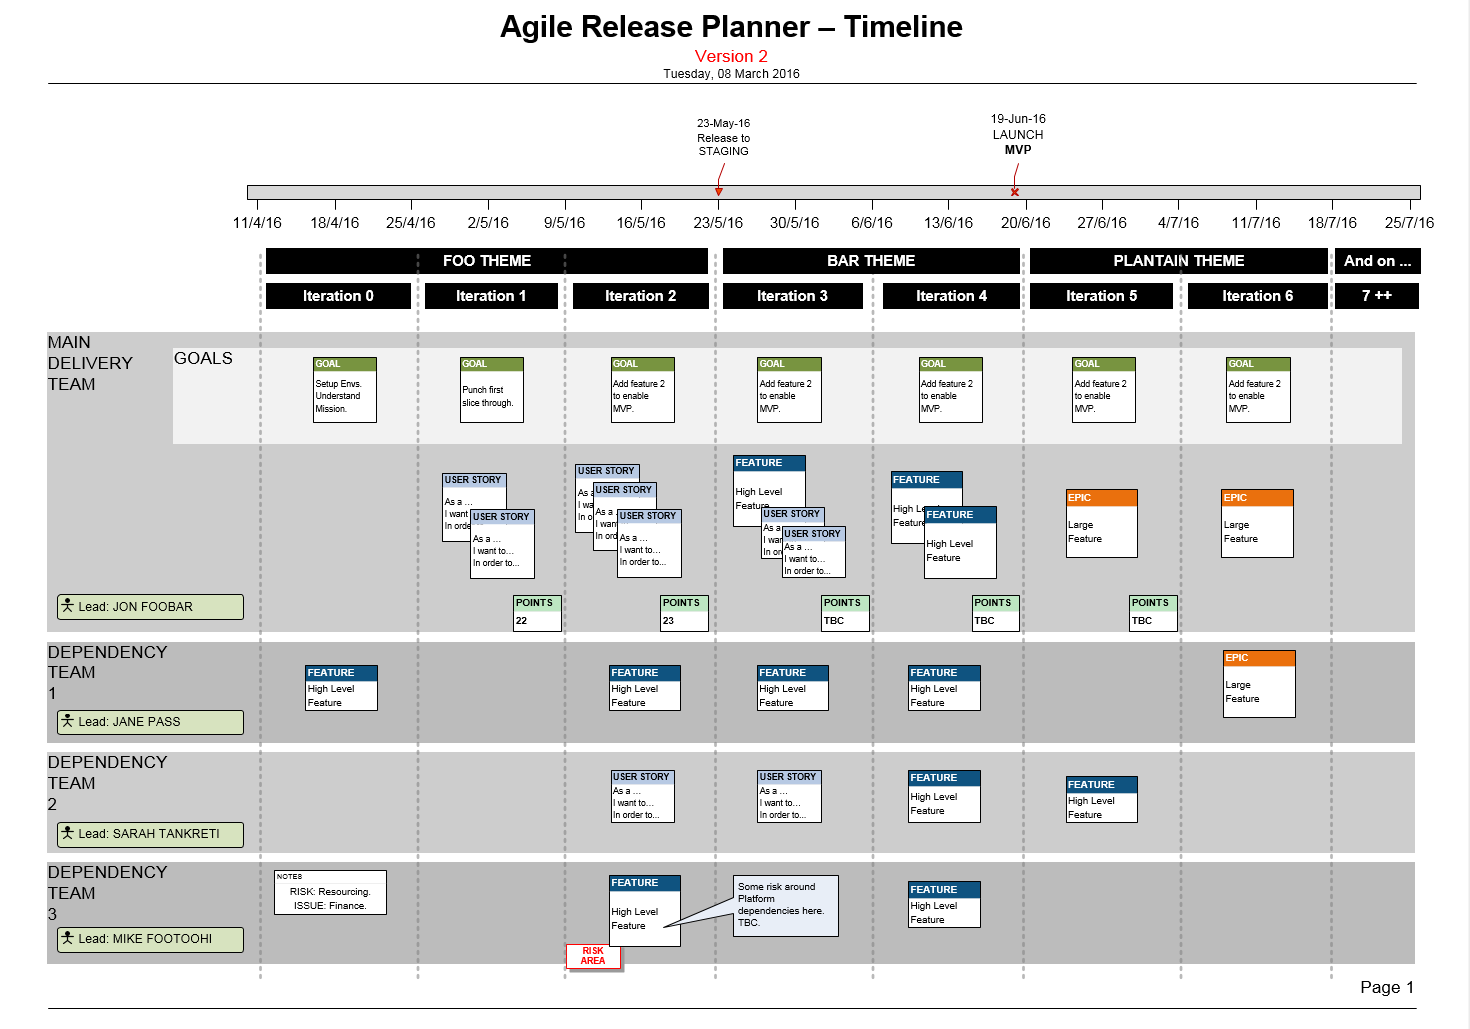 Agile Business Analyst Resume Visio Agile Release Plan For Scrum Teams Story Mapping